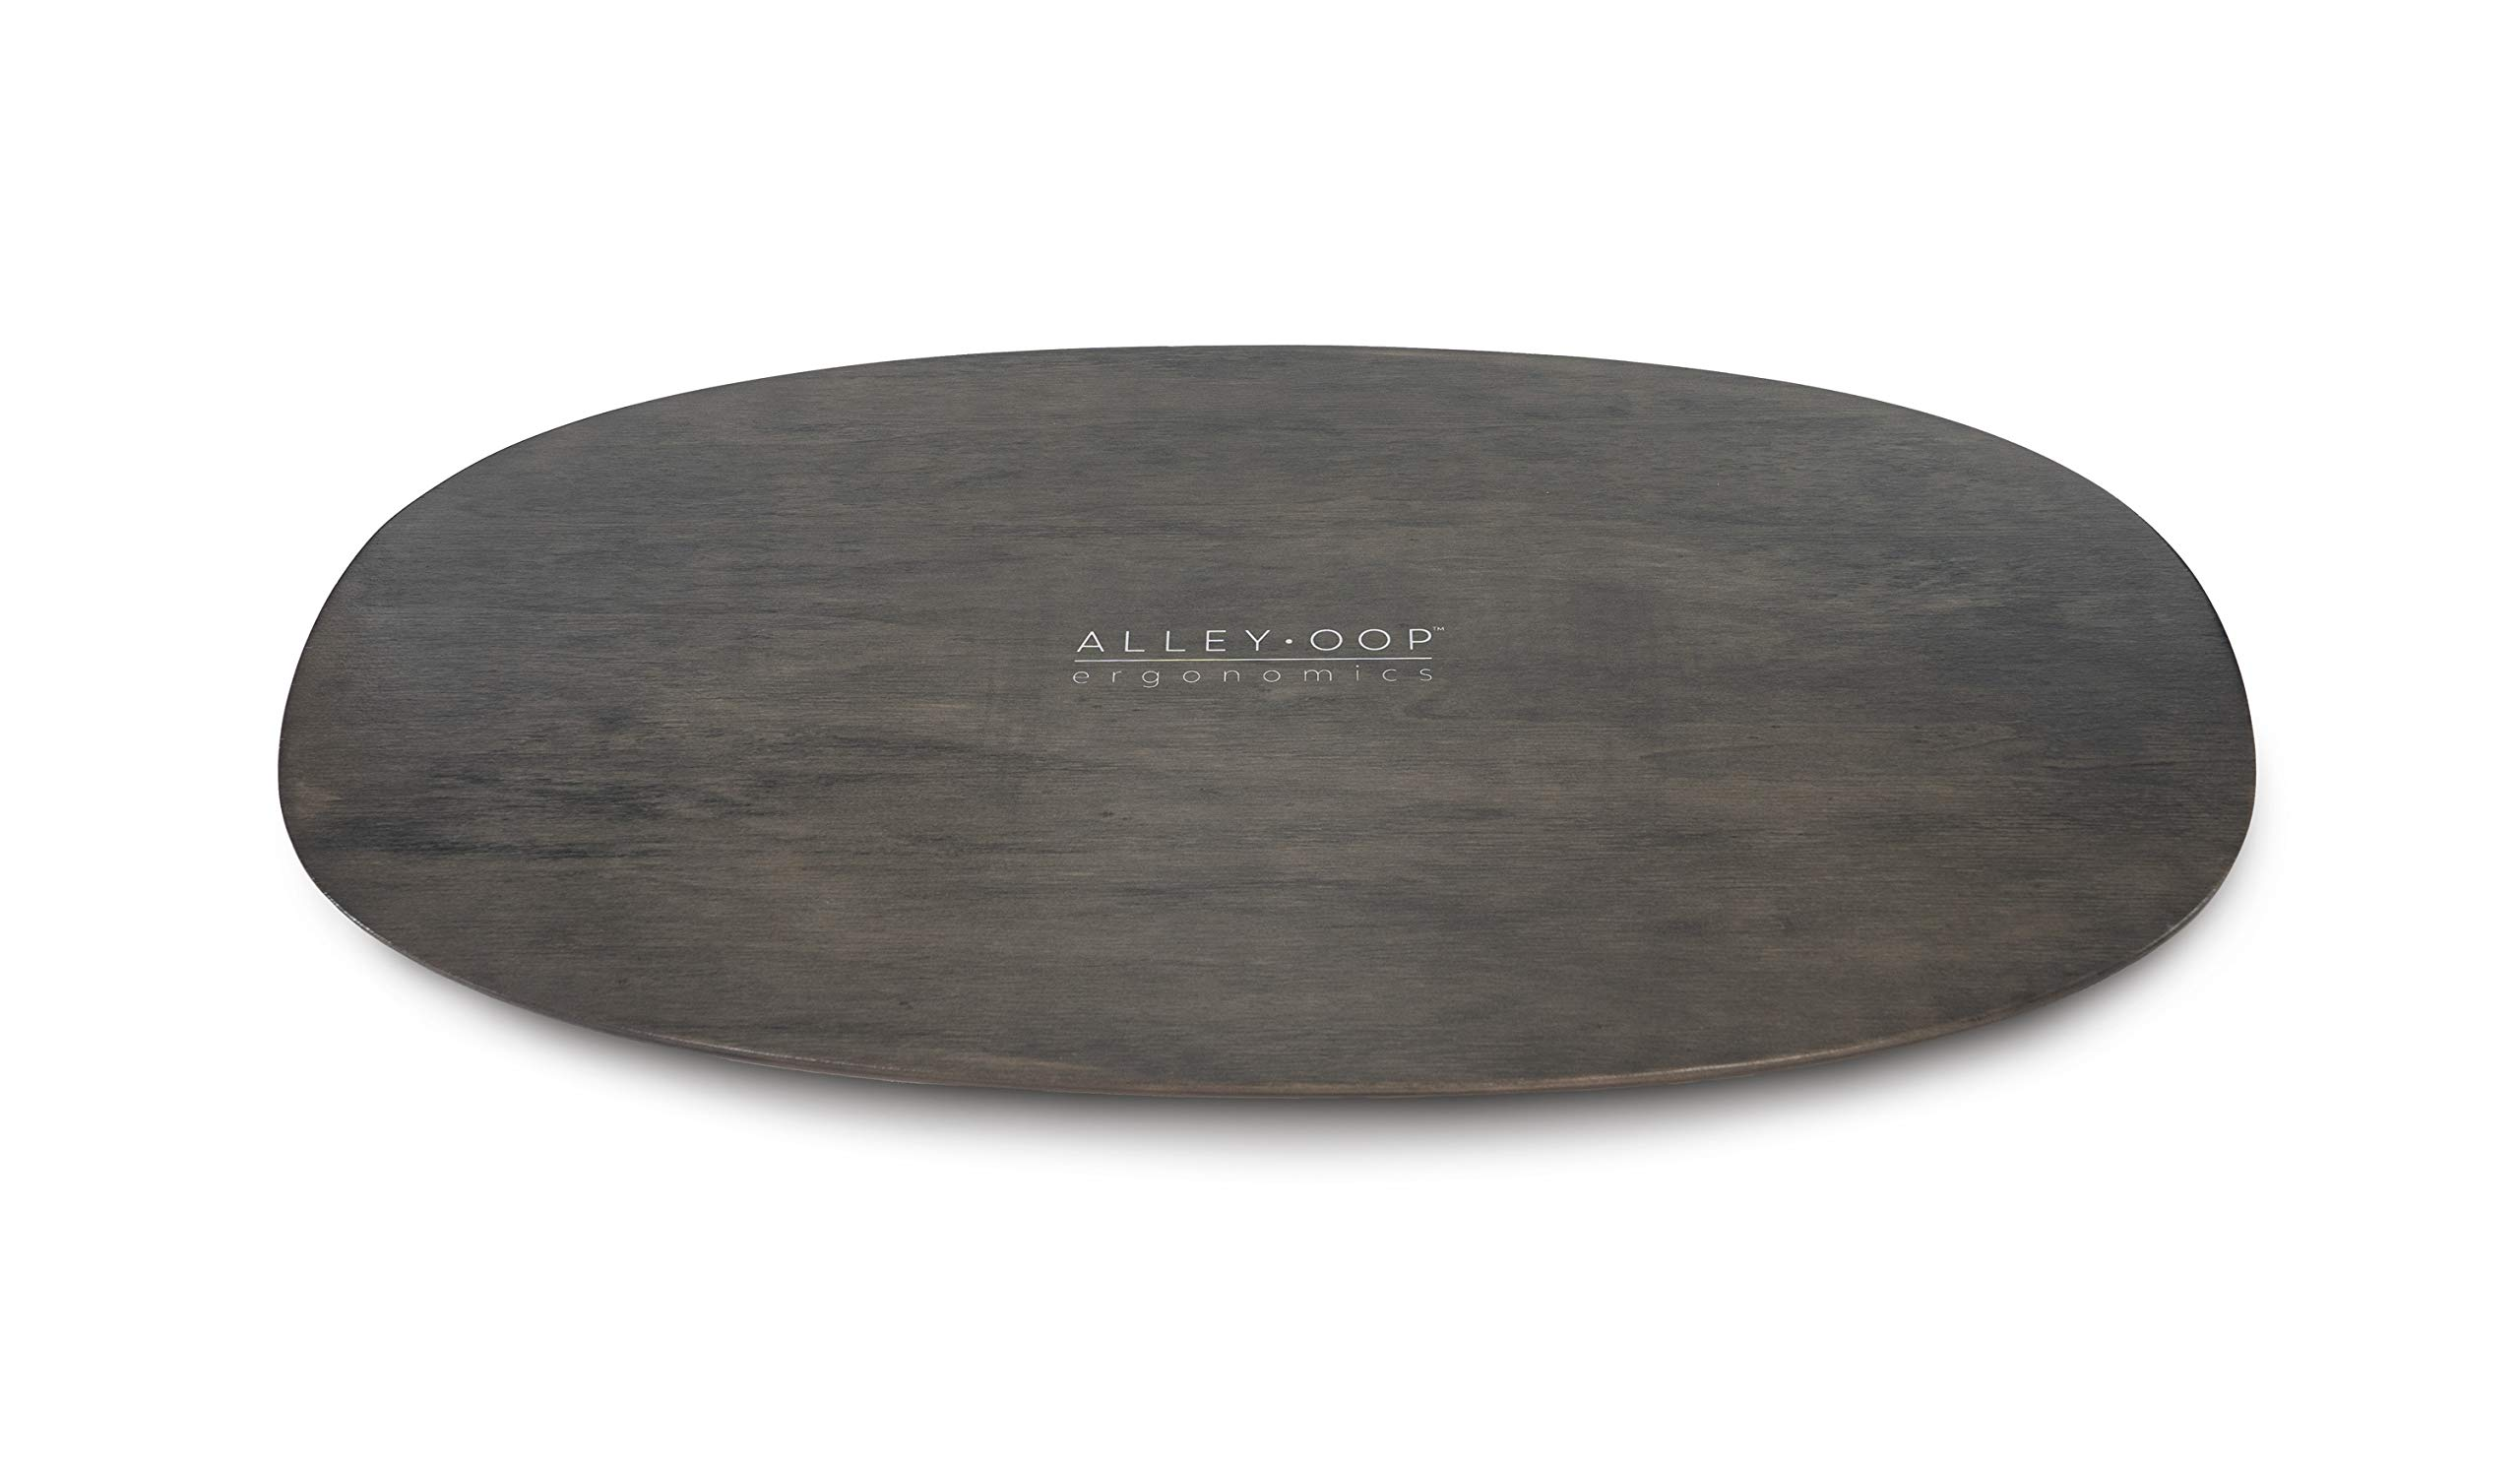 ALLEYOOP Wood Rocker Board • Unique 360° Omni-Directional Rocking Movement • Ergonomically Engineered for Stability at Your Standing Desk by JumpSport